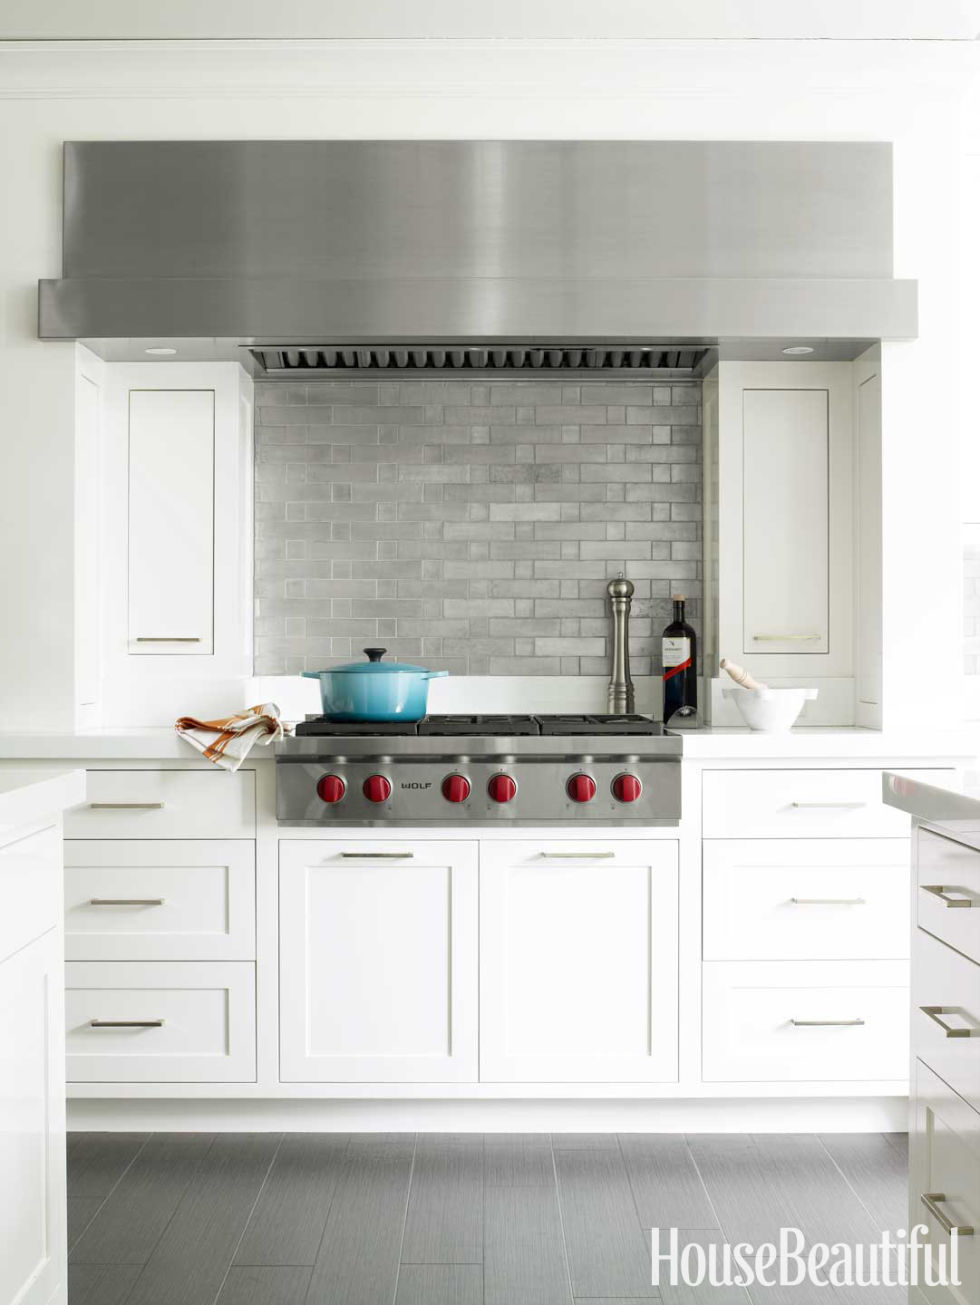 White Kitchen Backsplash Ideas 50 best kitchen backsplash ideas - tile designs for kitchen